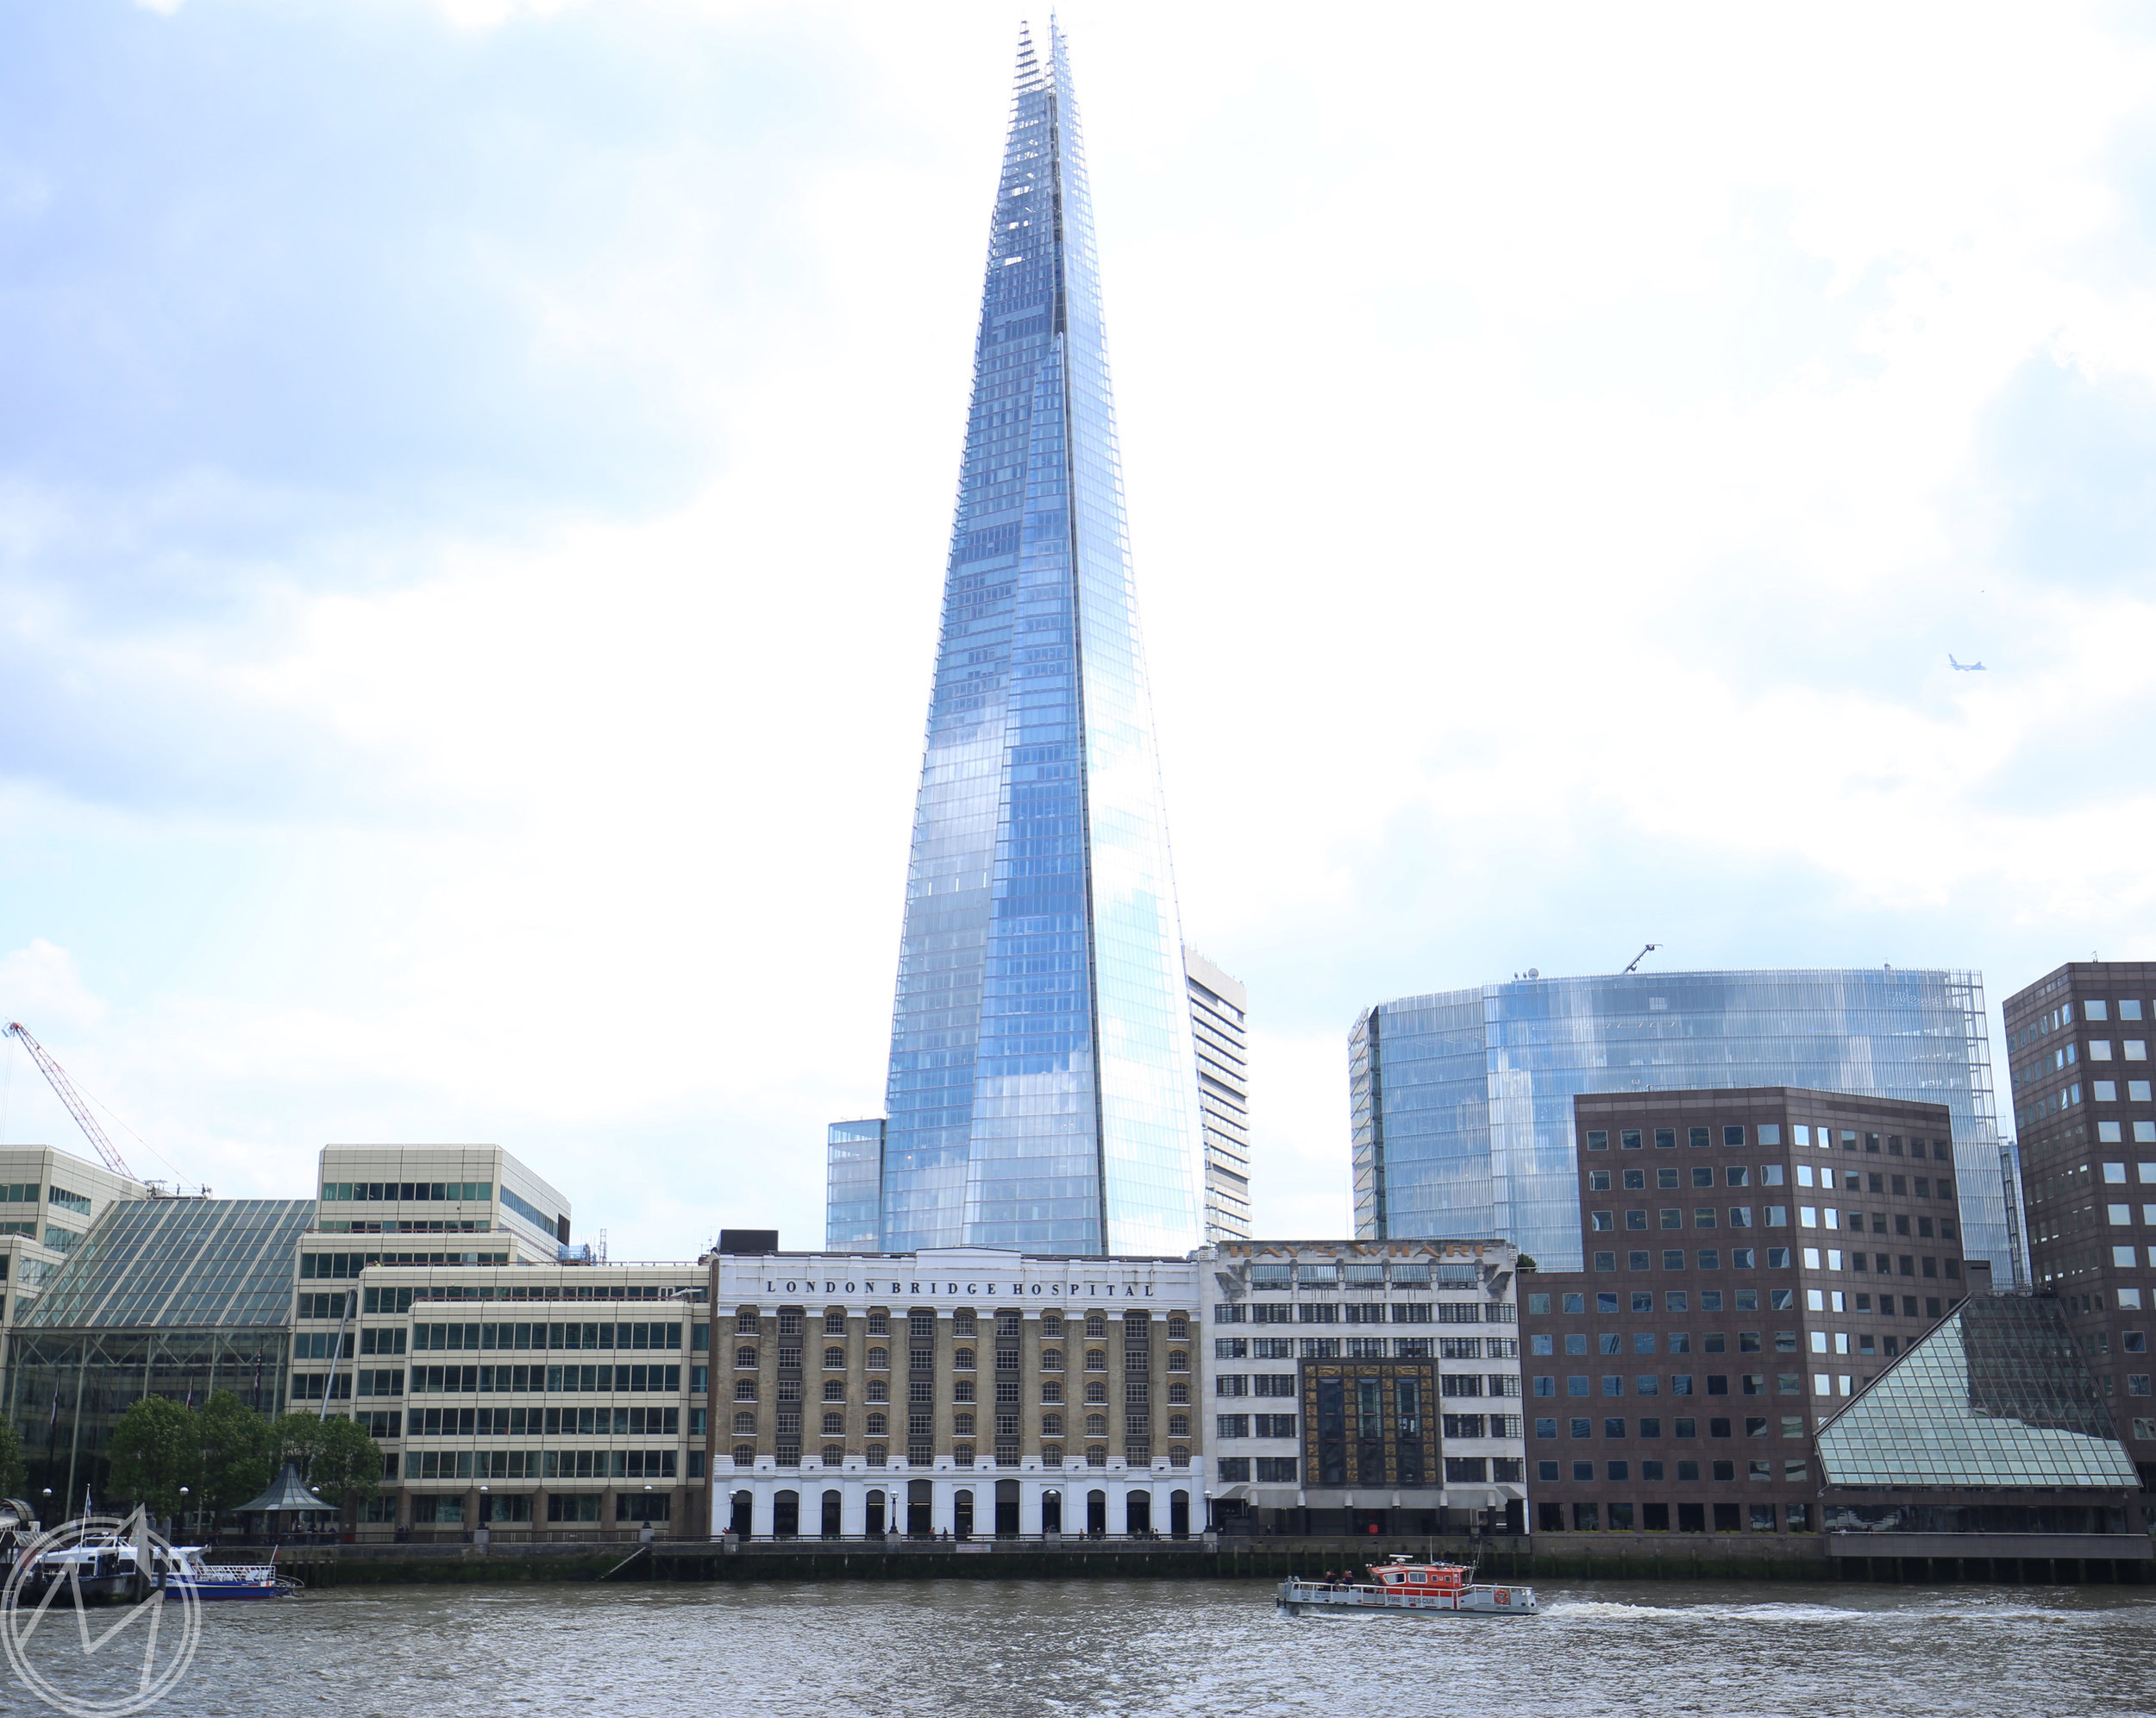 this building is aptly named the shard and looks so juxtaposed to the centuries-old buildings in the rest of the city.